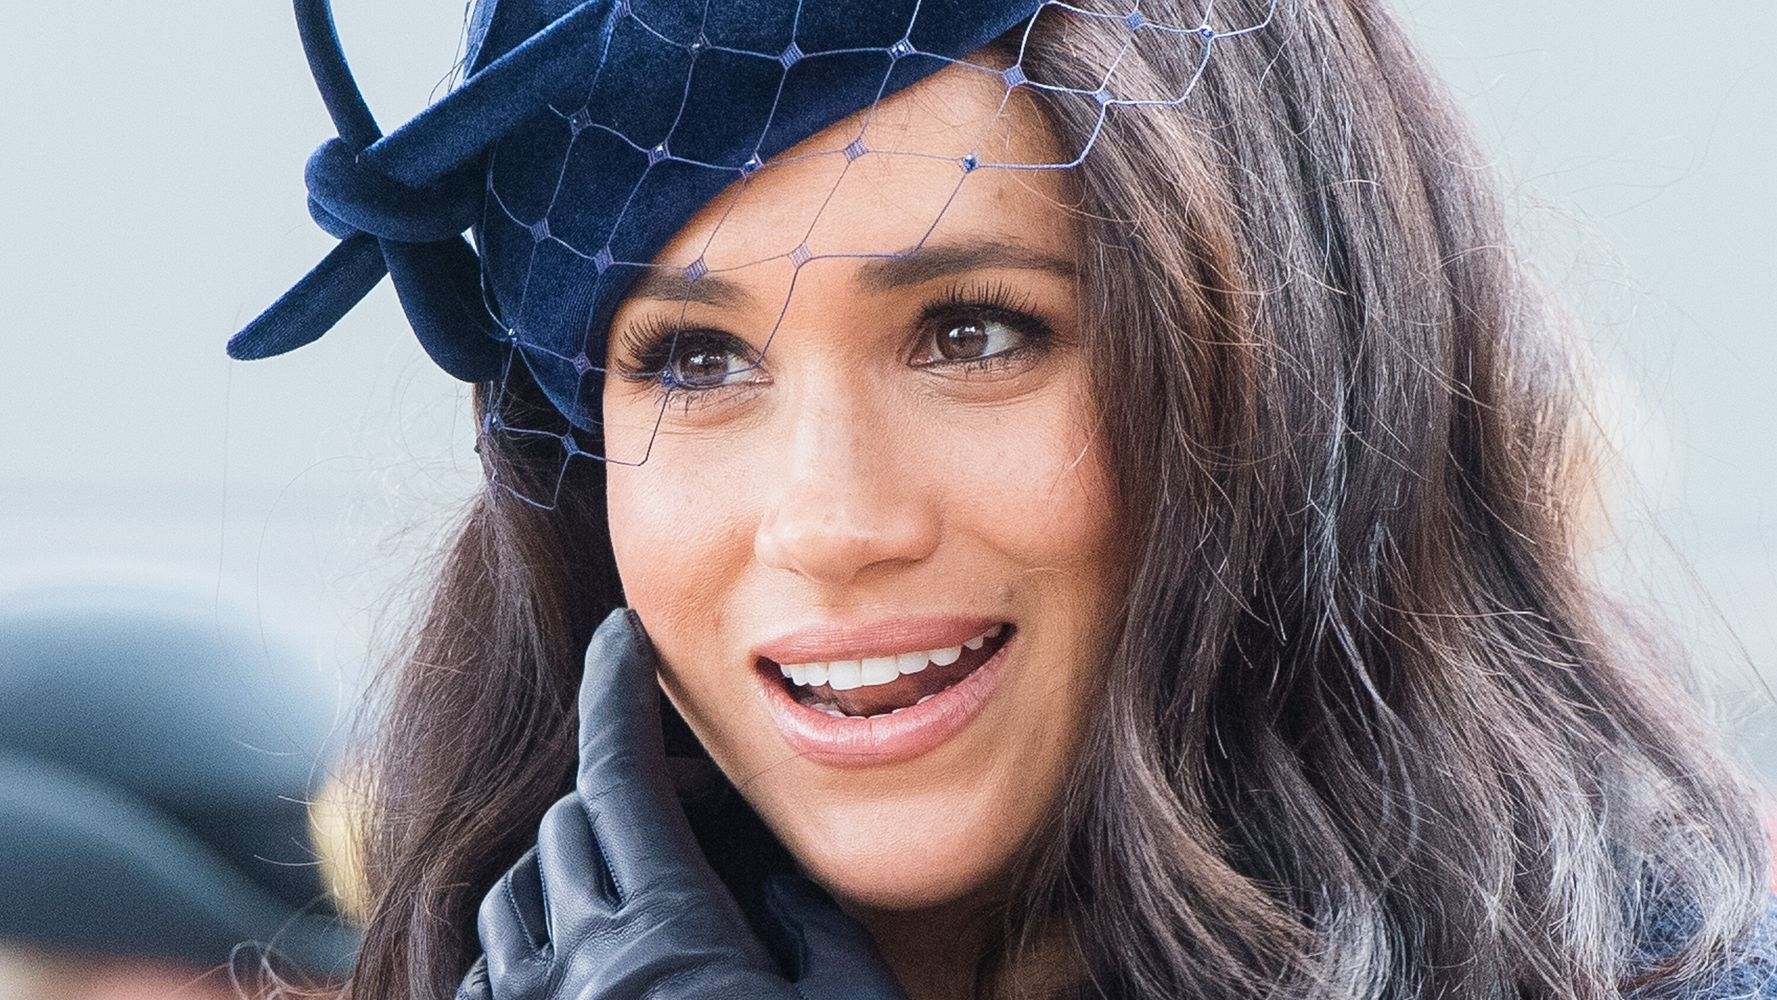 Why Meghan Markle Is The Biggest Fashion Influencer Of 2019